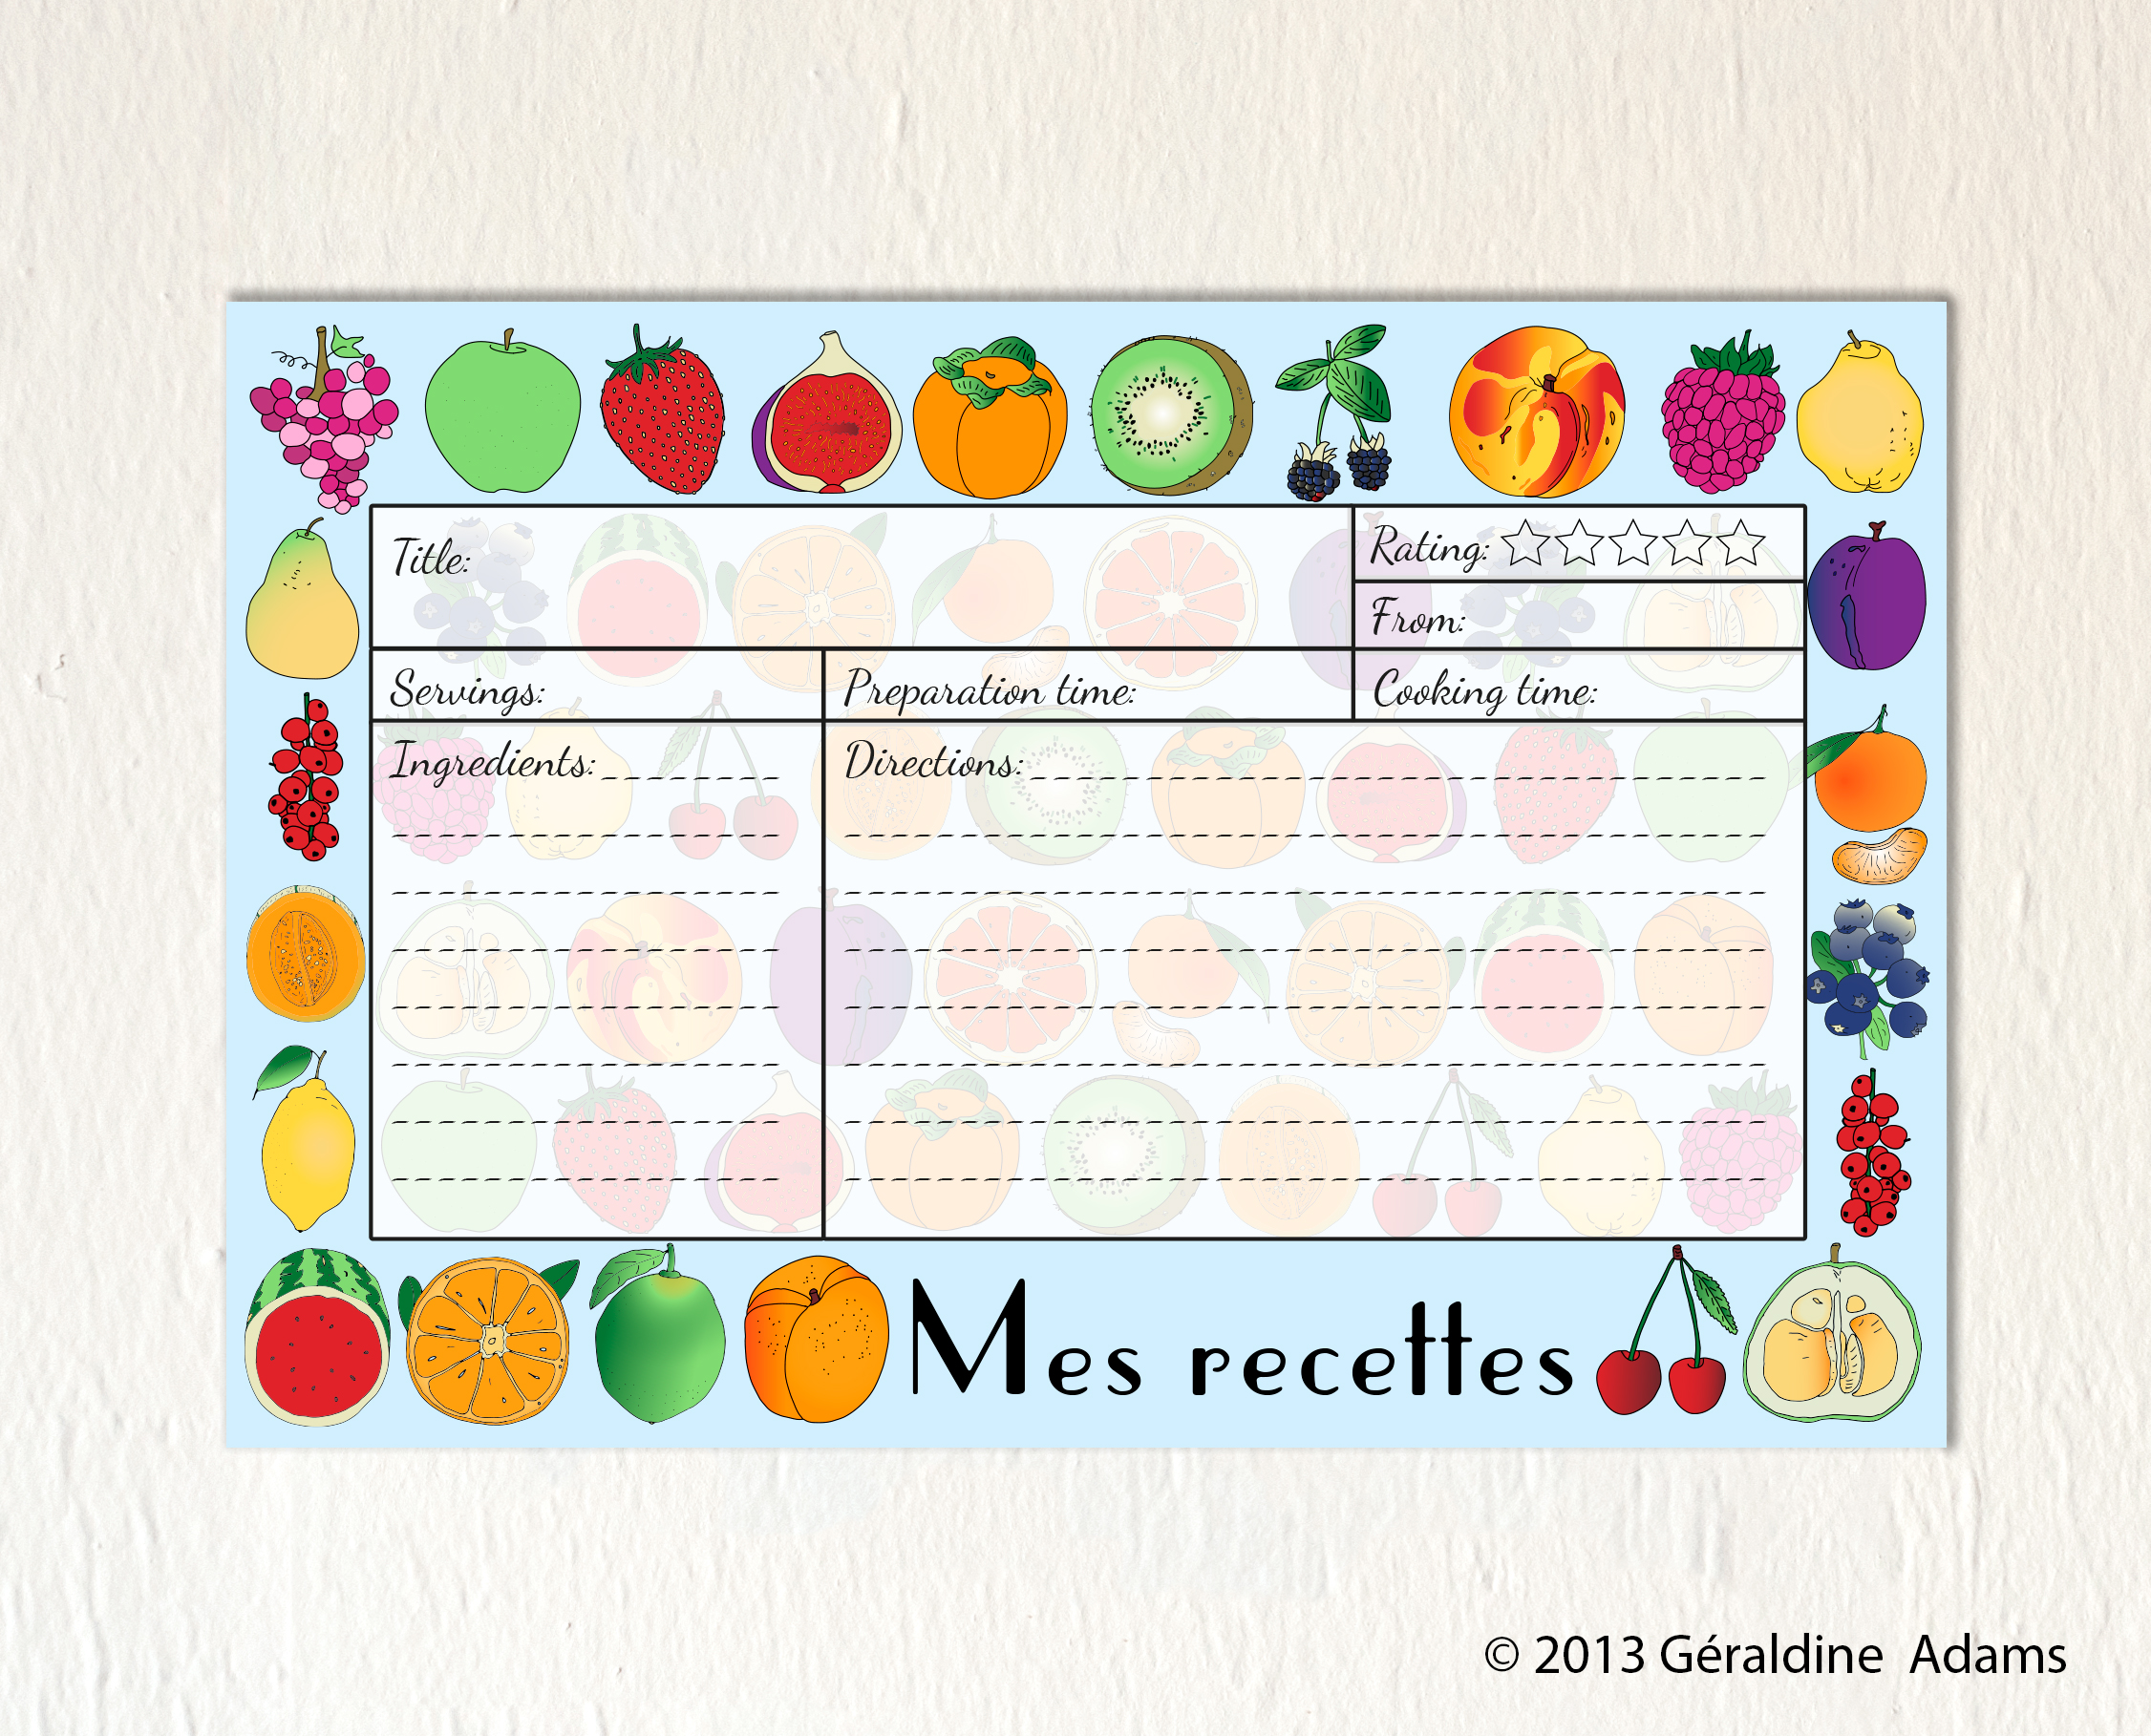 Recipe Cards Mes Recettes Fruits by Géraldine Adams